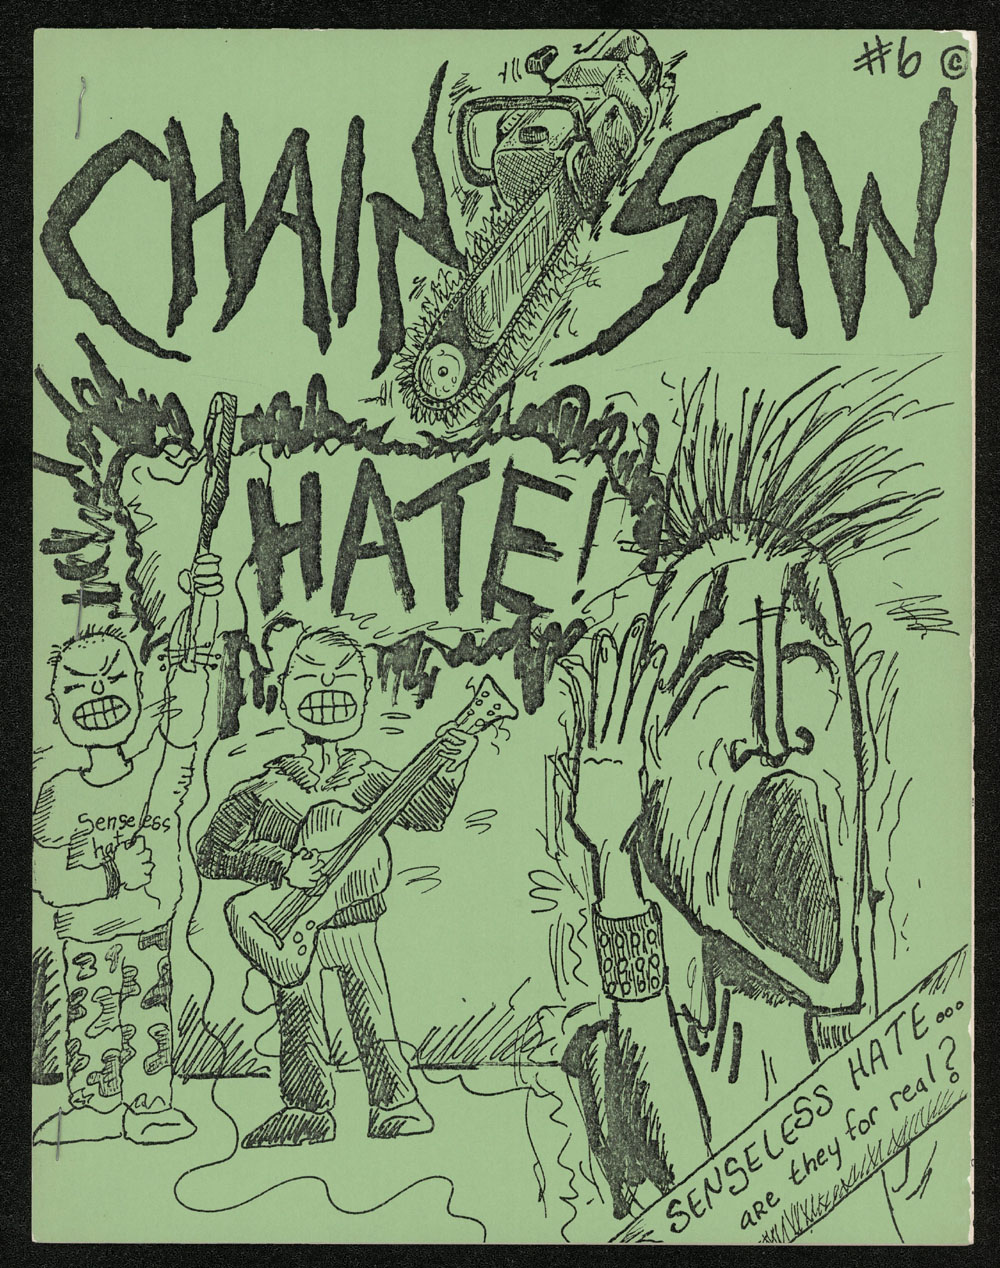 CHAINSAW HATE #6